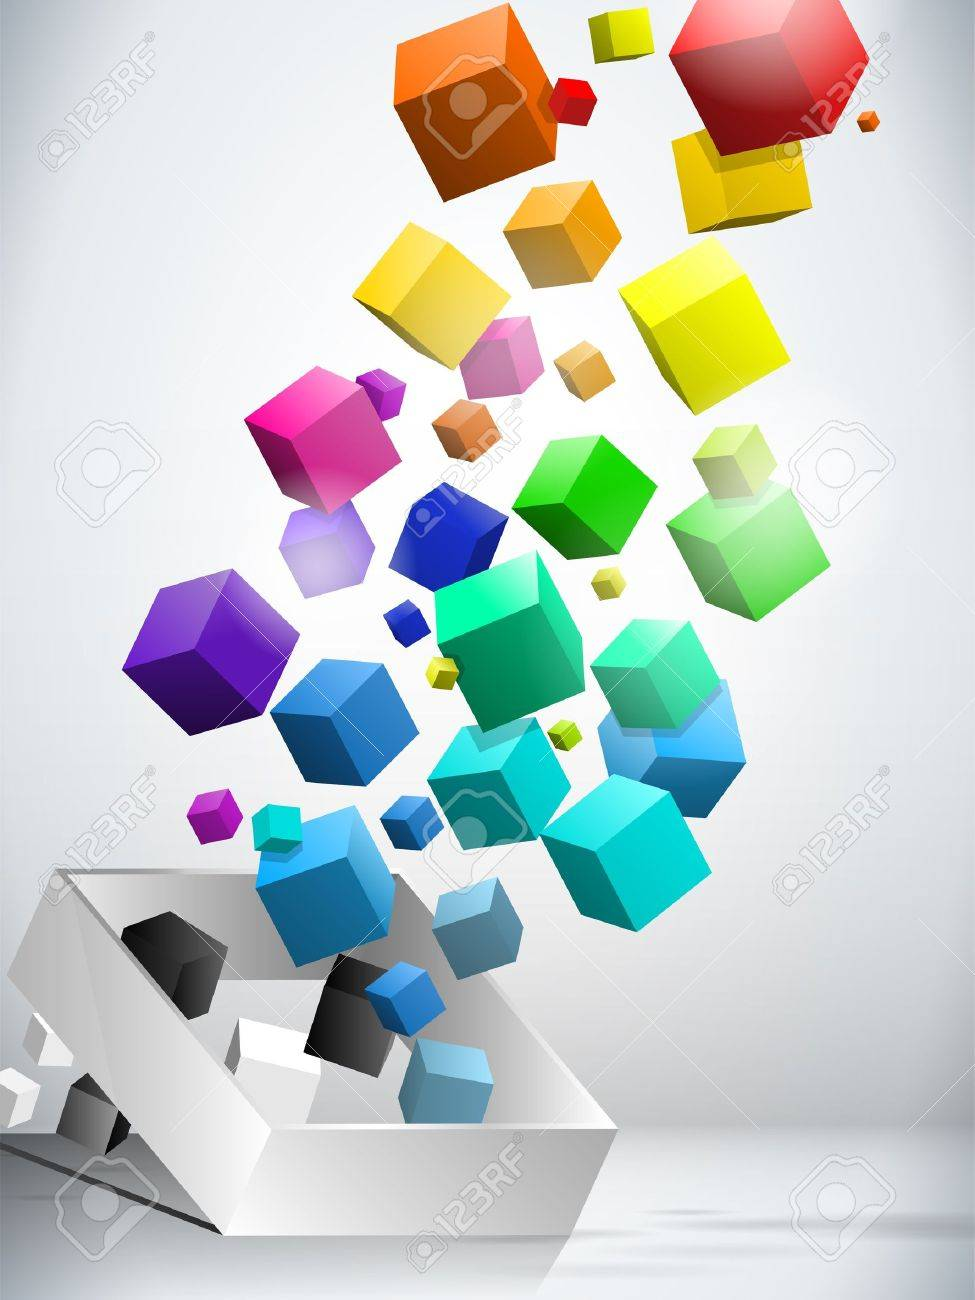 Colorful Flying Cubes Background Stock Vector - 11032088